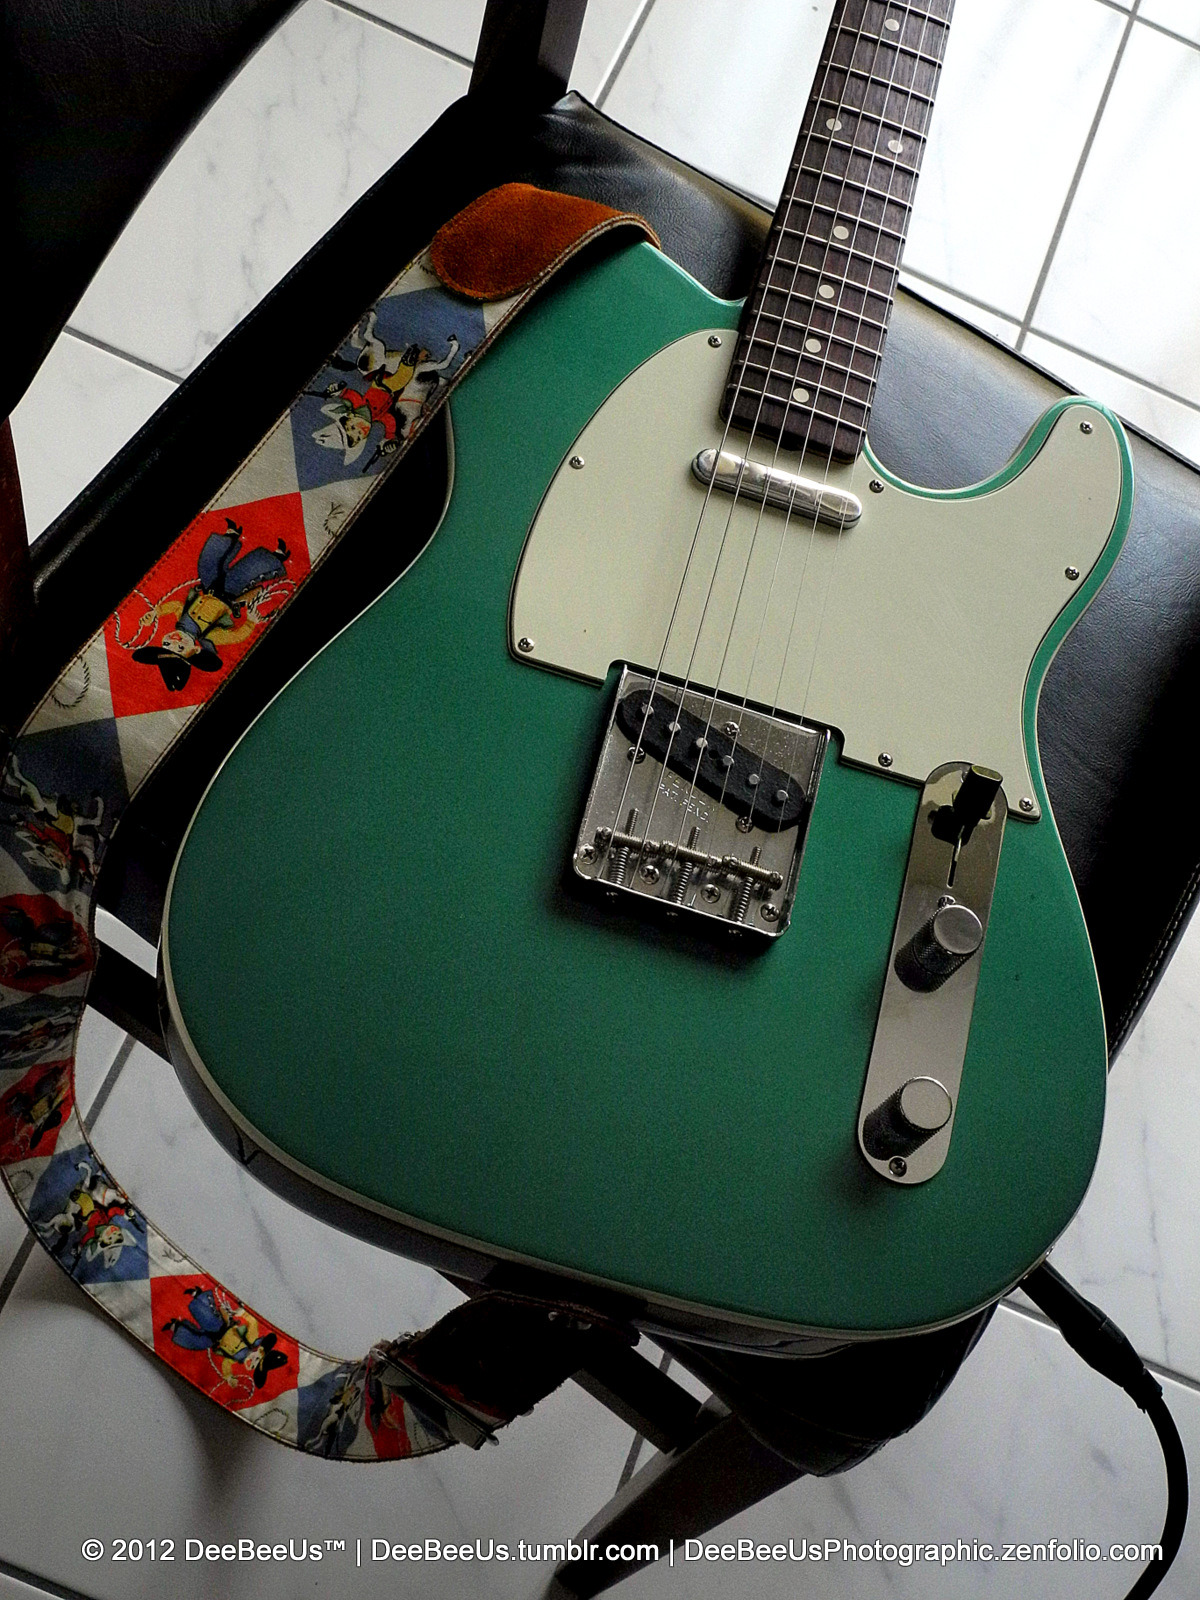 deebeeus:  …and some evenings I just play my Sherwood Green AVRI Custom Telecaster!   I am pleased to say that I have exactly 5 Telecasters…and every single one of them is awesome!  They are (in no particular order): 2000-and-something American Vintage Reissue '62 Custom Tele in Sherwood Green (pictured). 2005 Custom Shop '67 Relic in shoreline gold.  Love this one because it weigh in at a mere 6.8 lbs!  Plus shoreline is such a cool colour!  :D 2009 American Standard FSR, in fiesta red with matching headstock and hand-wound Pickup Wizard pickups. 1998 Custom Shop '60 Custom Tele NOS, in 3 tone sunburst. 2011 Ltd Edition 60th Anniversary Modern Thinline in Olympic White. Maybe I will do a Telecaster-only photo series…hmmm…yeah.  Stay tuned! Toronto, July 16, 2012.